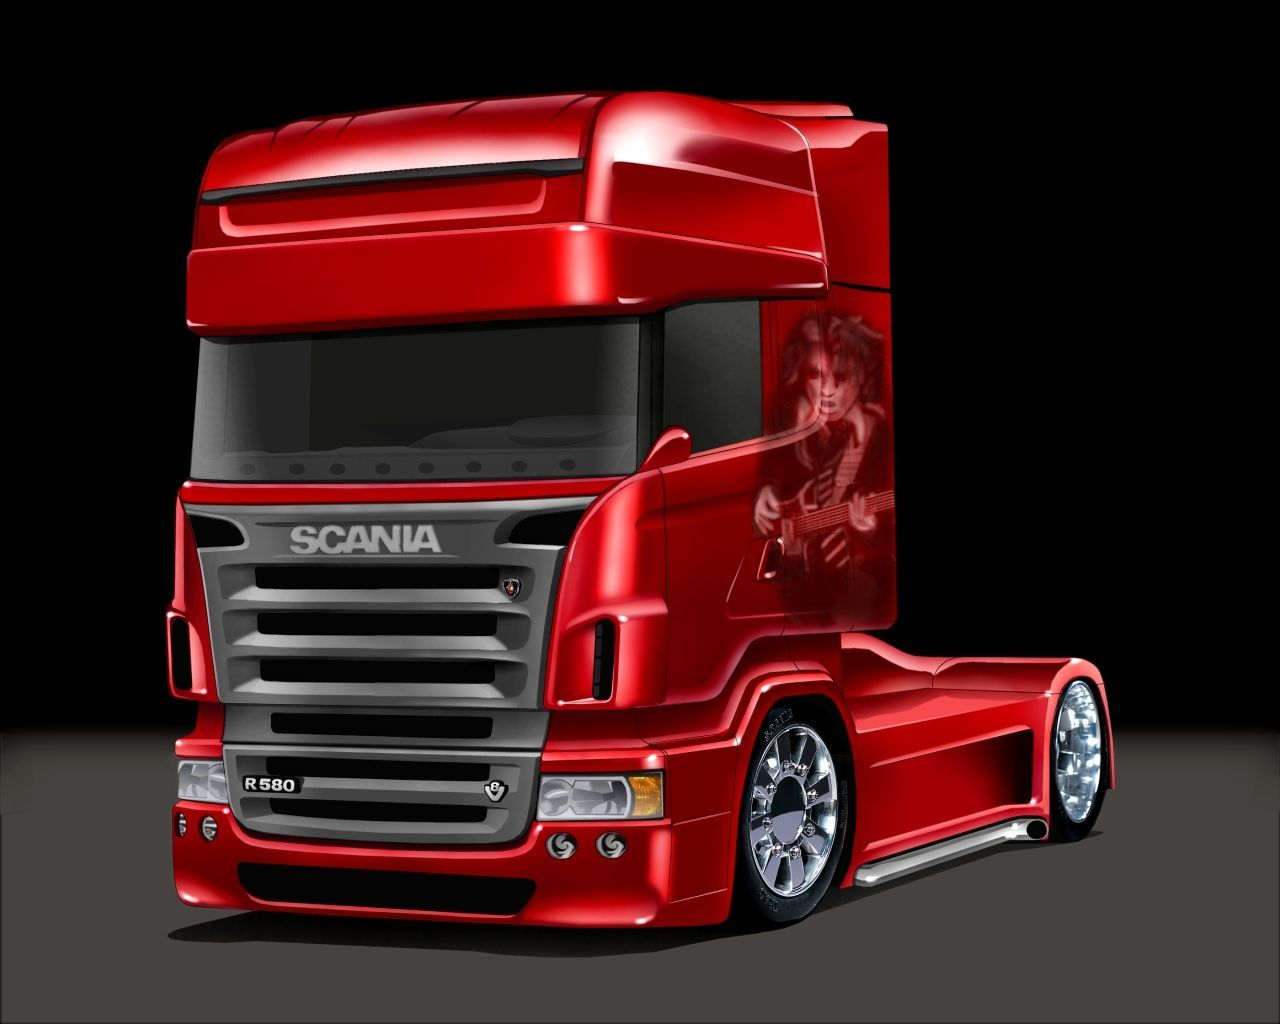 19 195488 back to 69 scania trucks wallpapers red truck